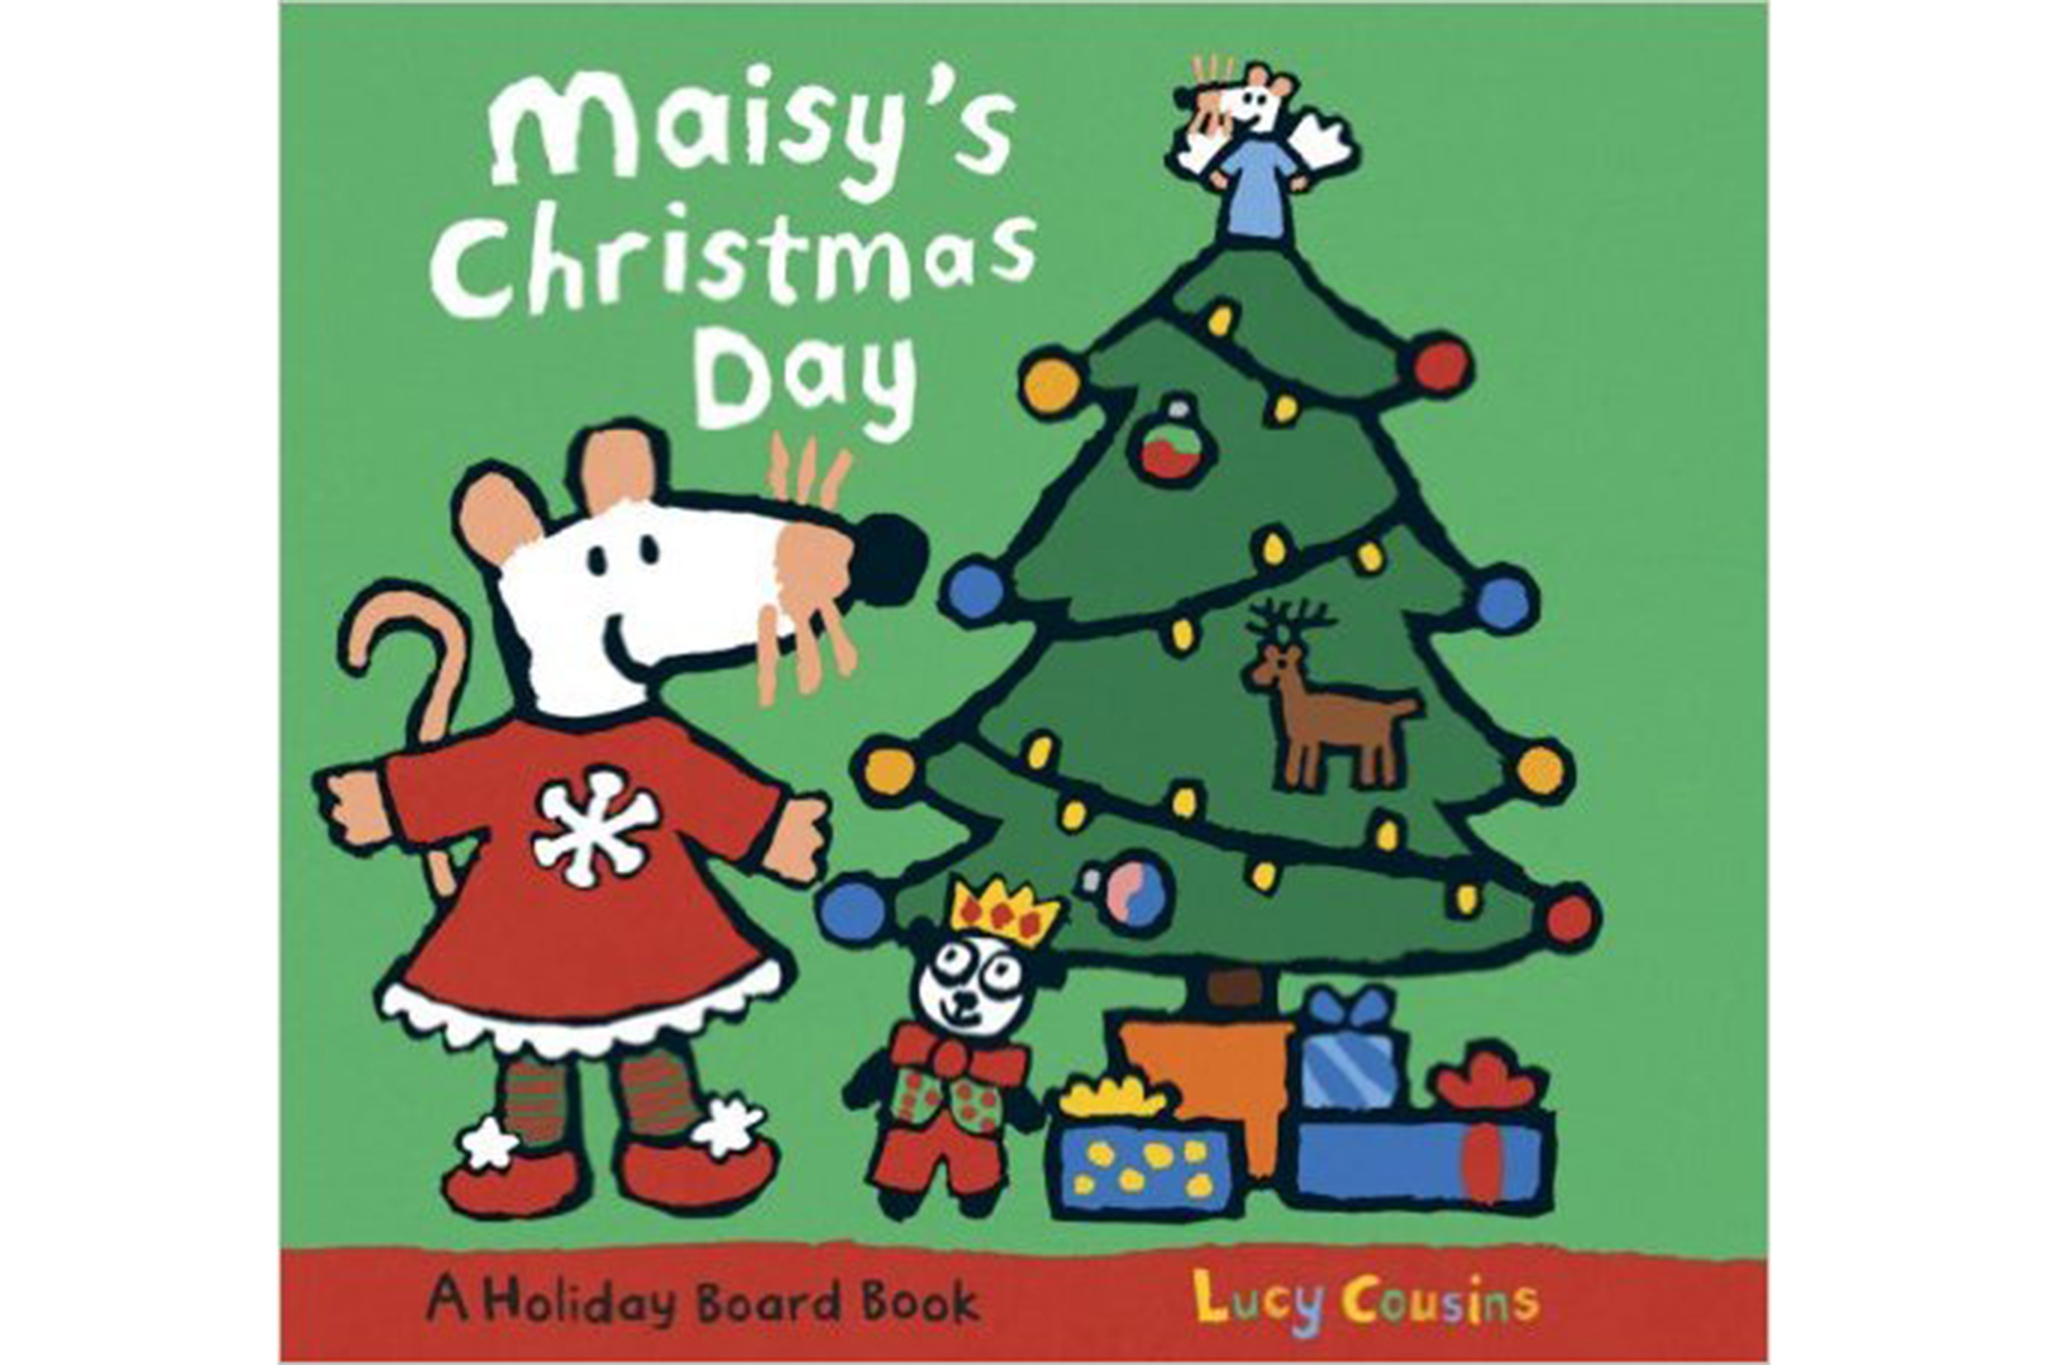 maisys christmas day by lucy cousins